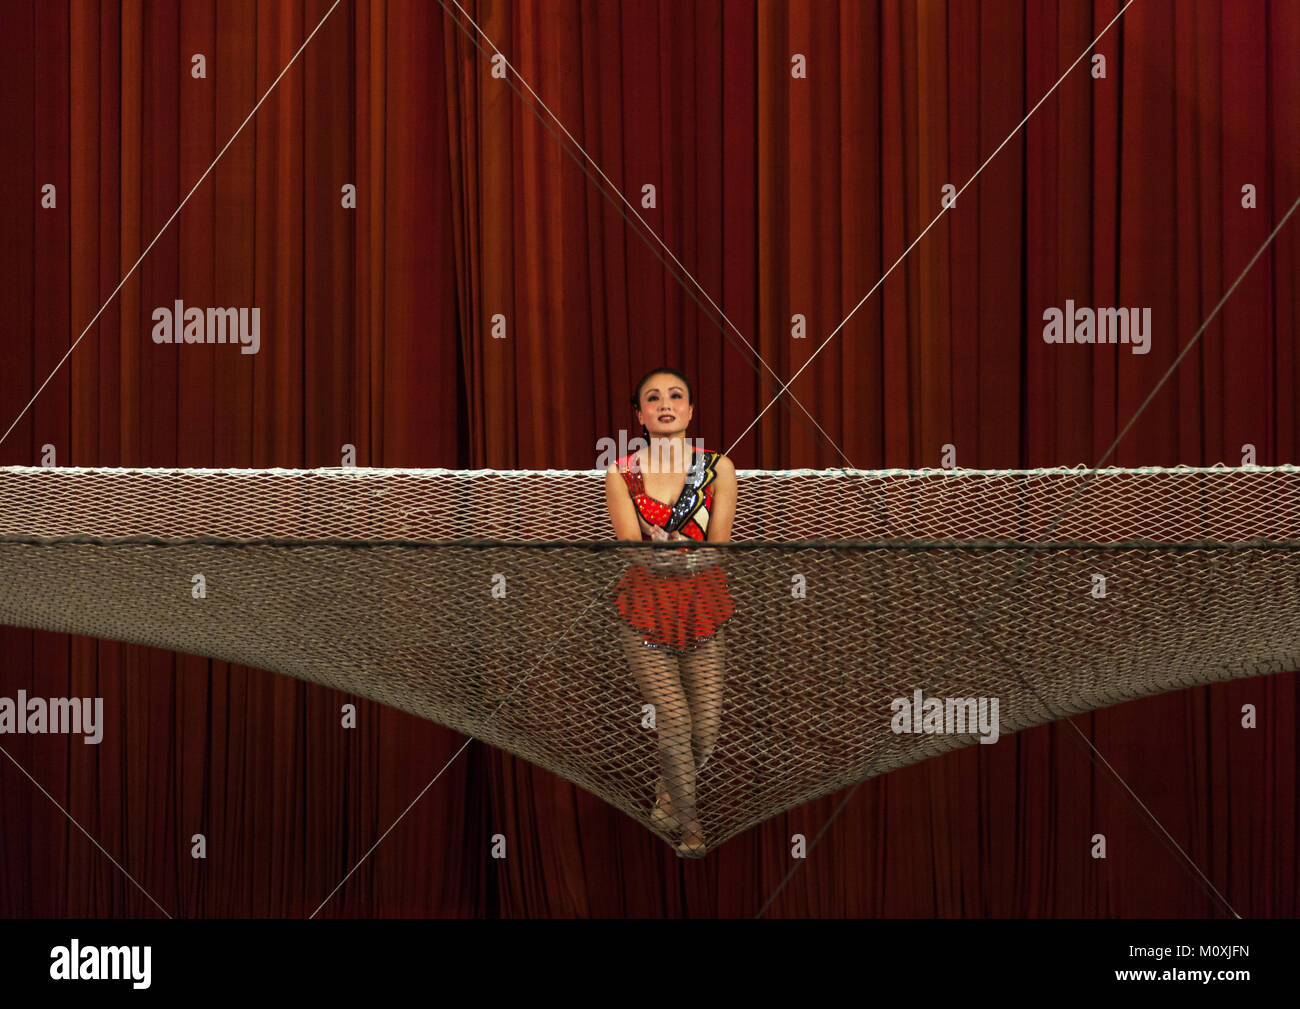 Circus Safety Net